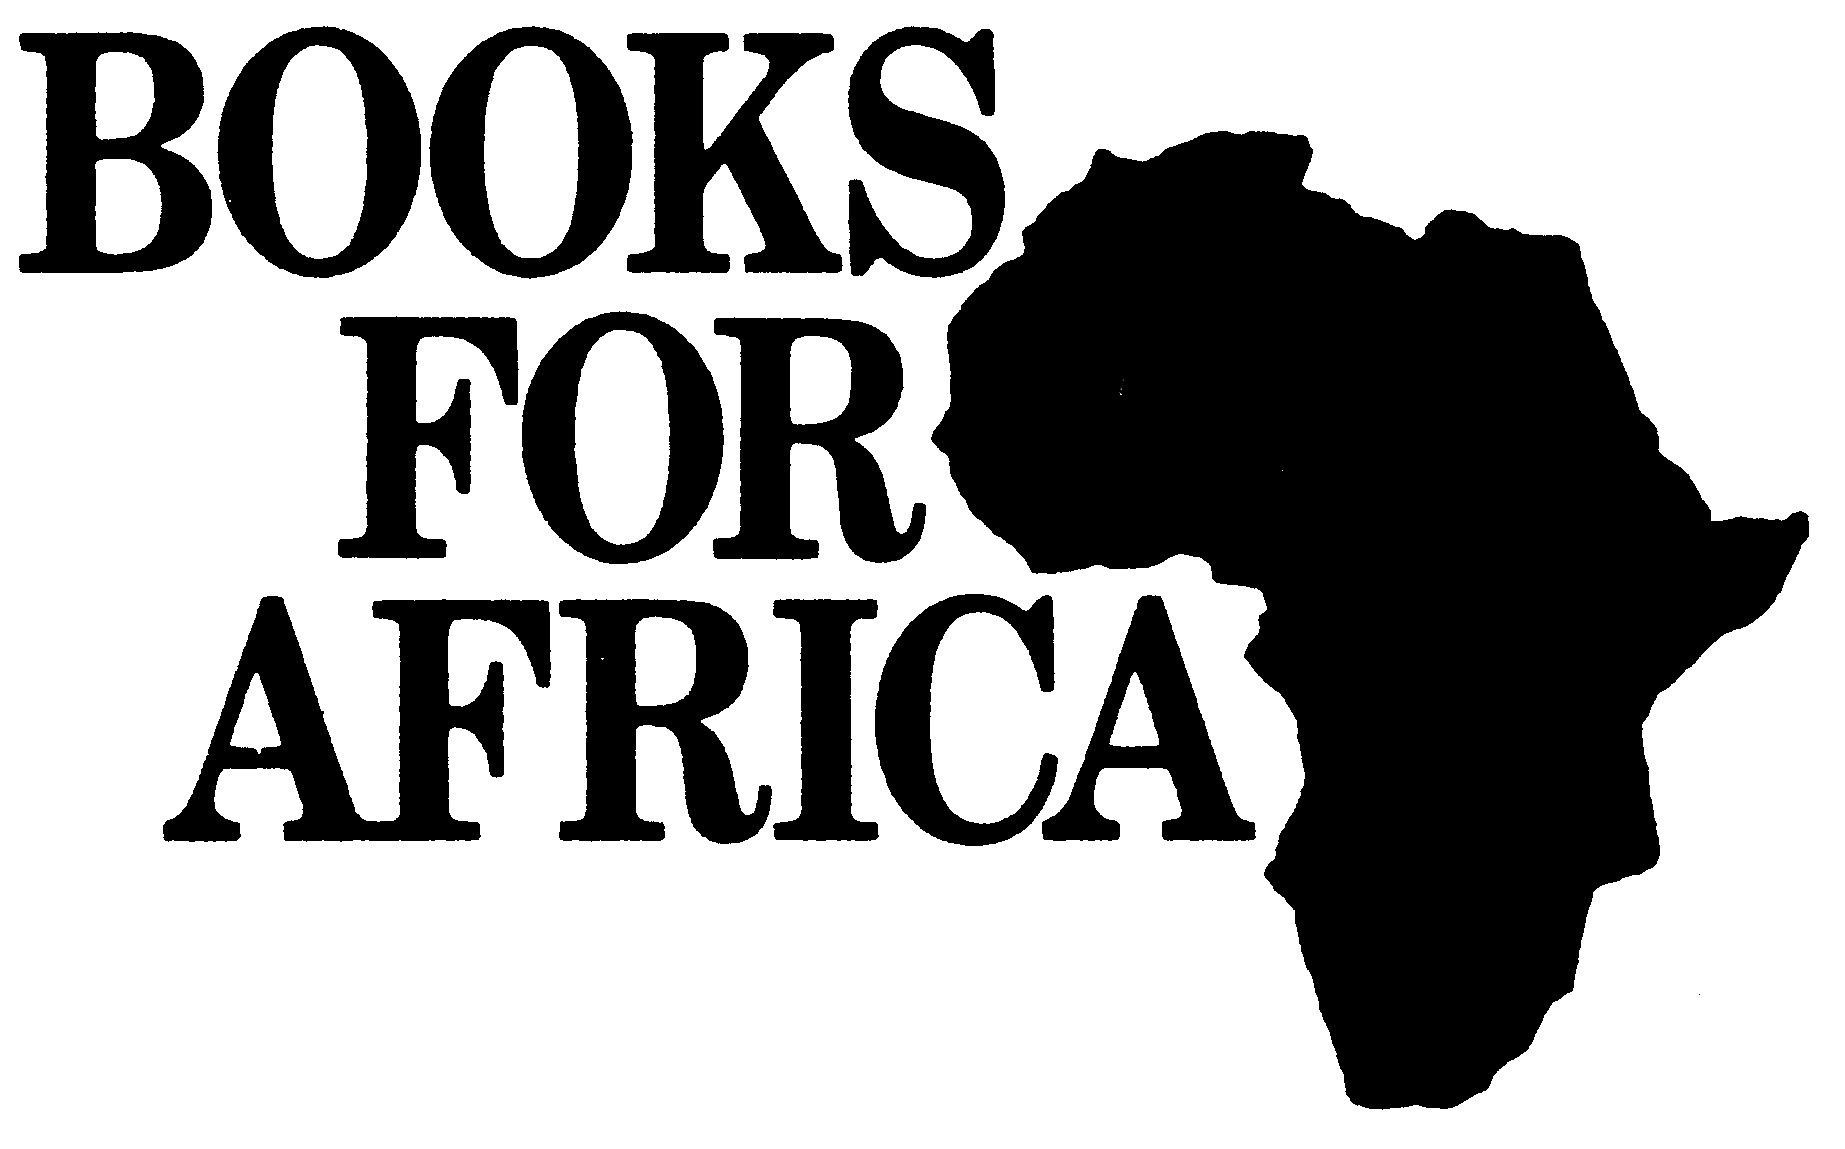 About Books for Africa